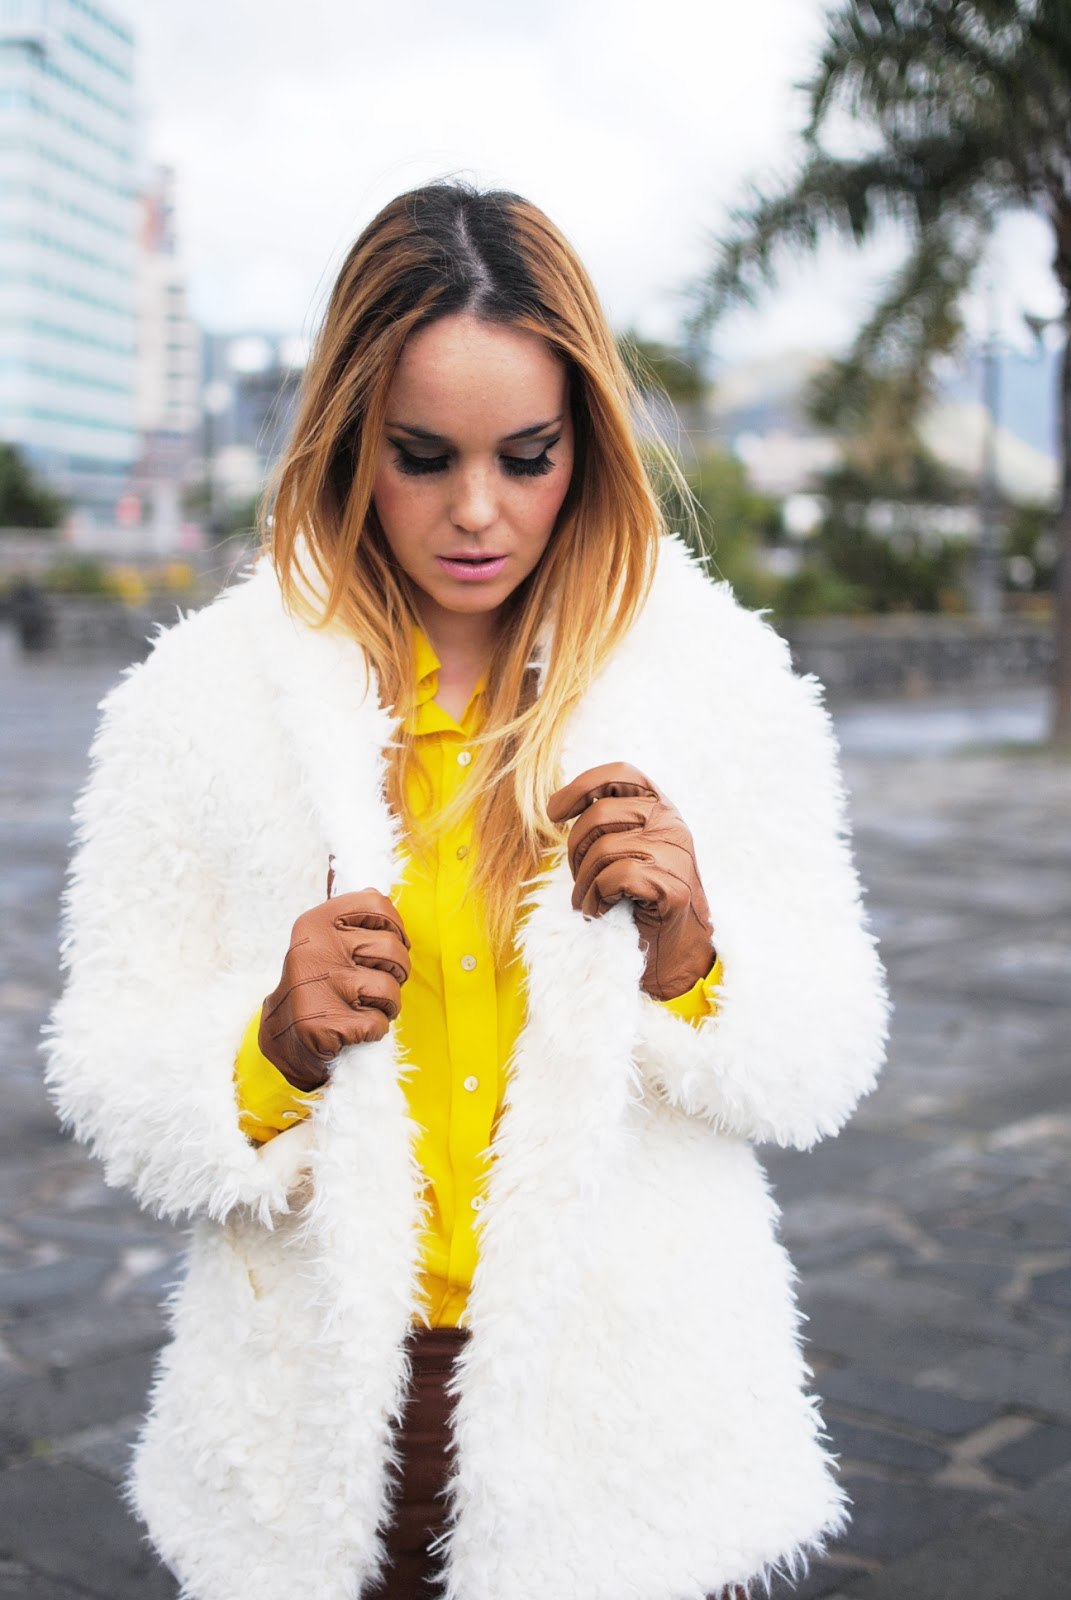 nery hdez, gloves, primark, rosewholesales, fur coat, teddy coat, blonde